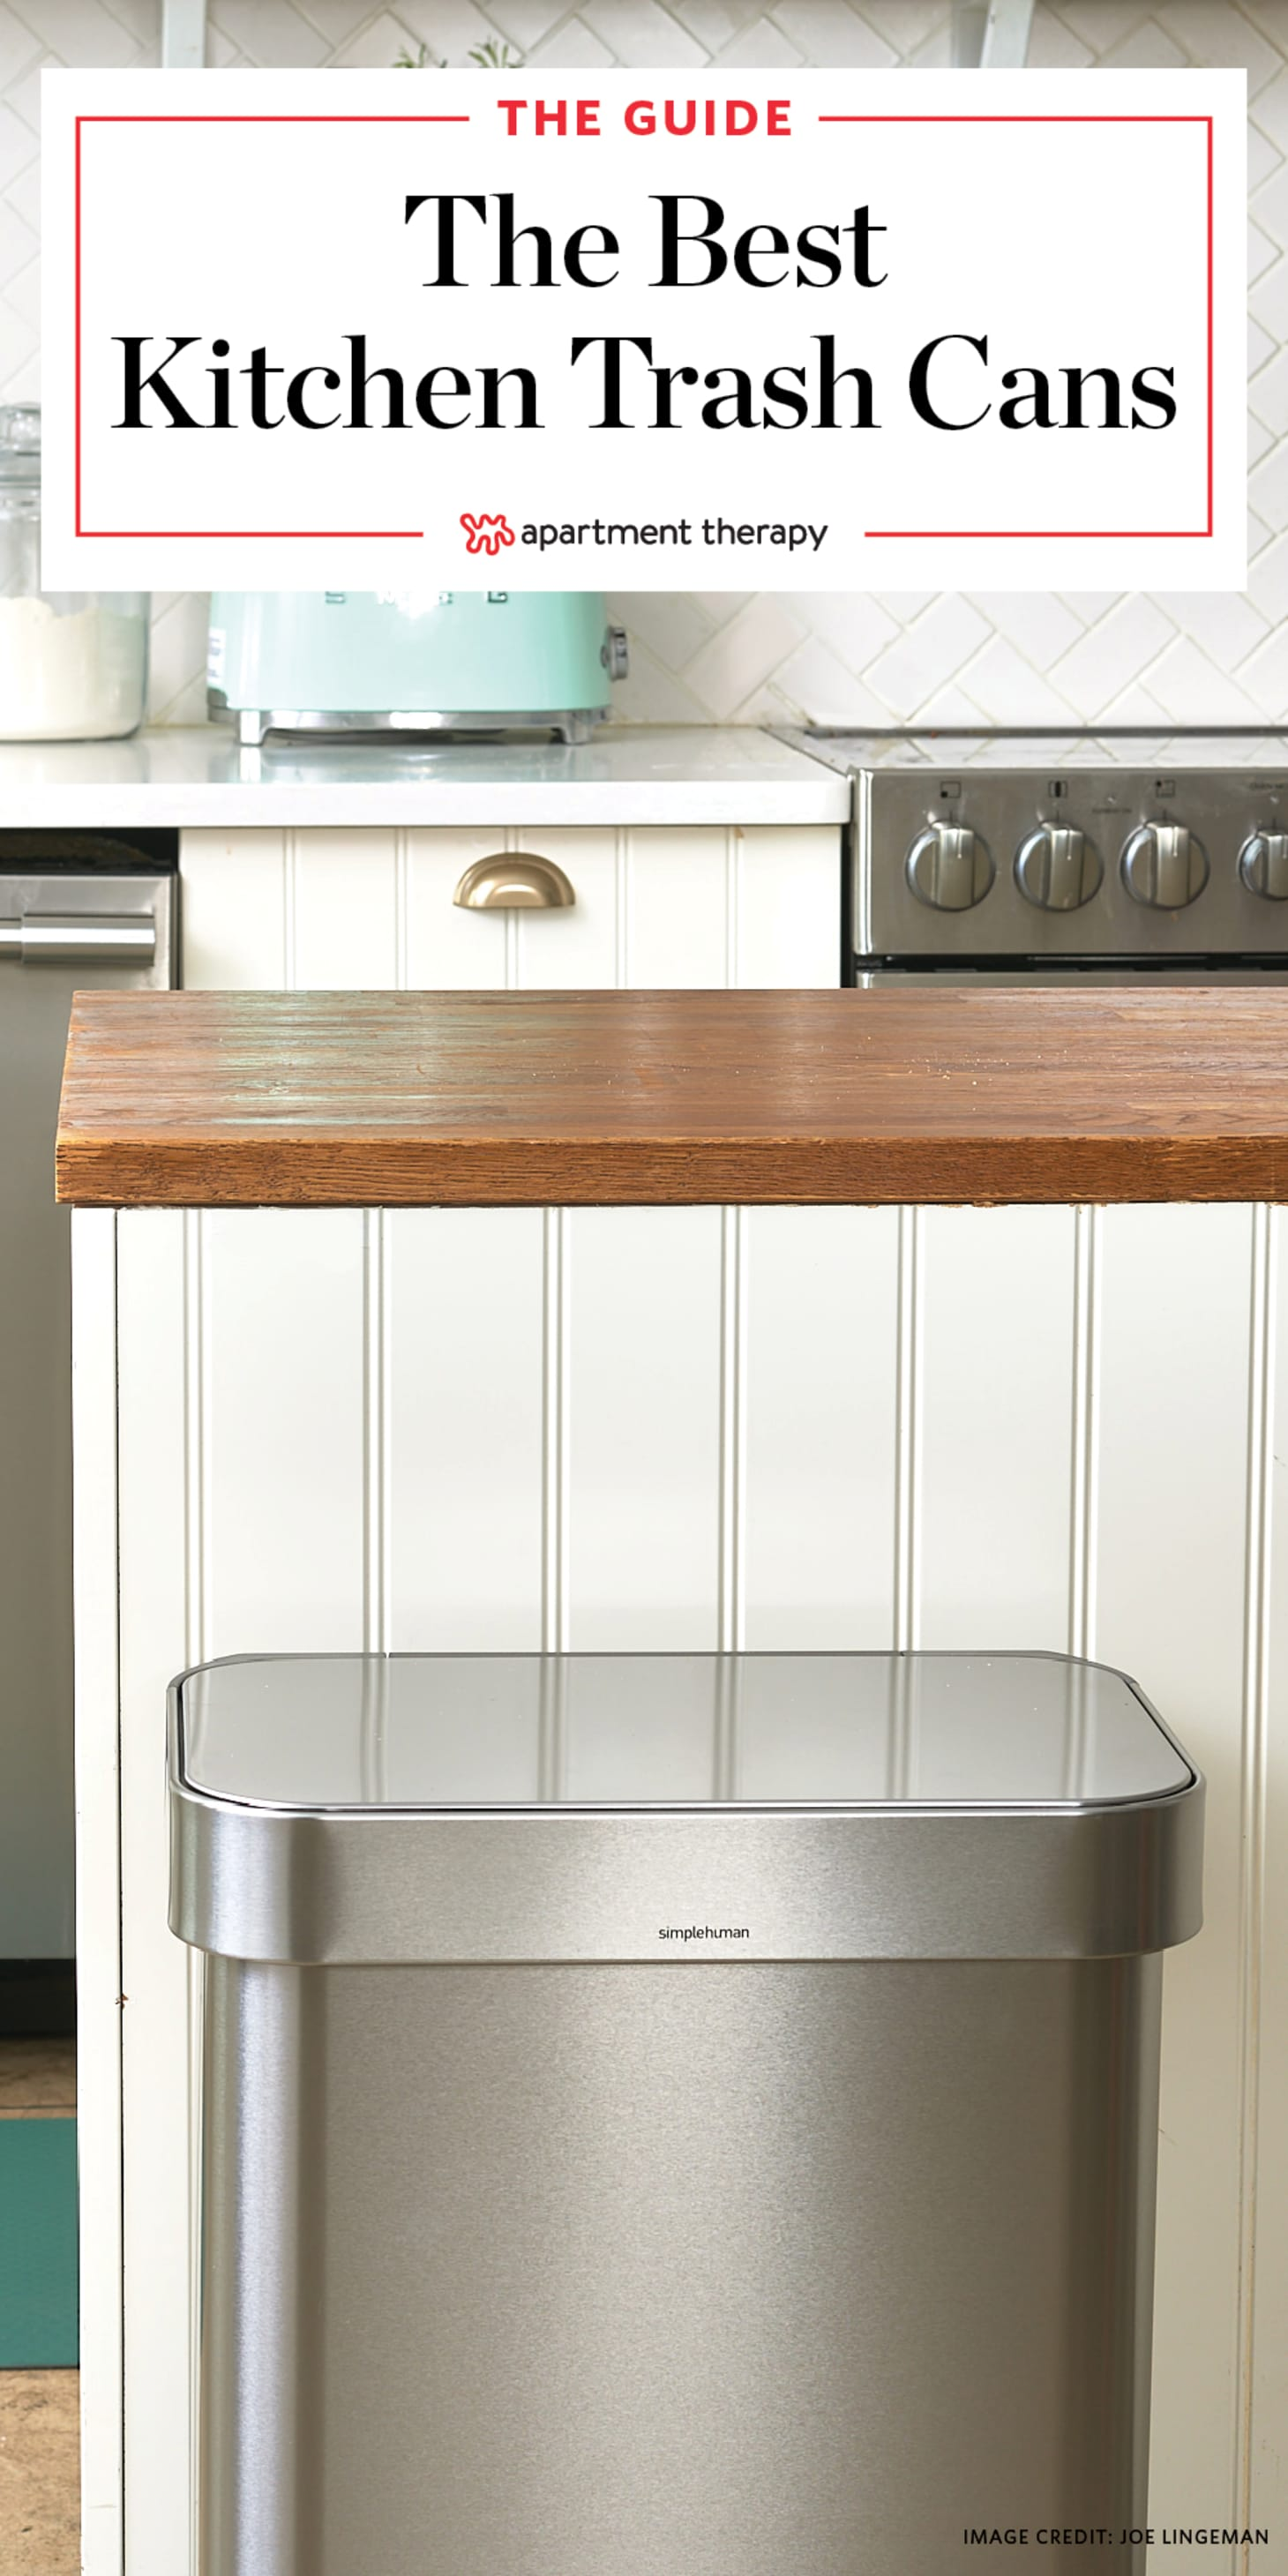 The Best Kitchen Trash Cans - 2018 Annual Guide | Apartment ...